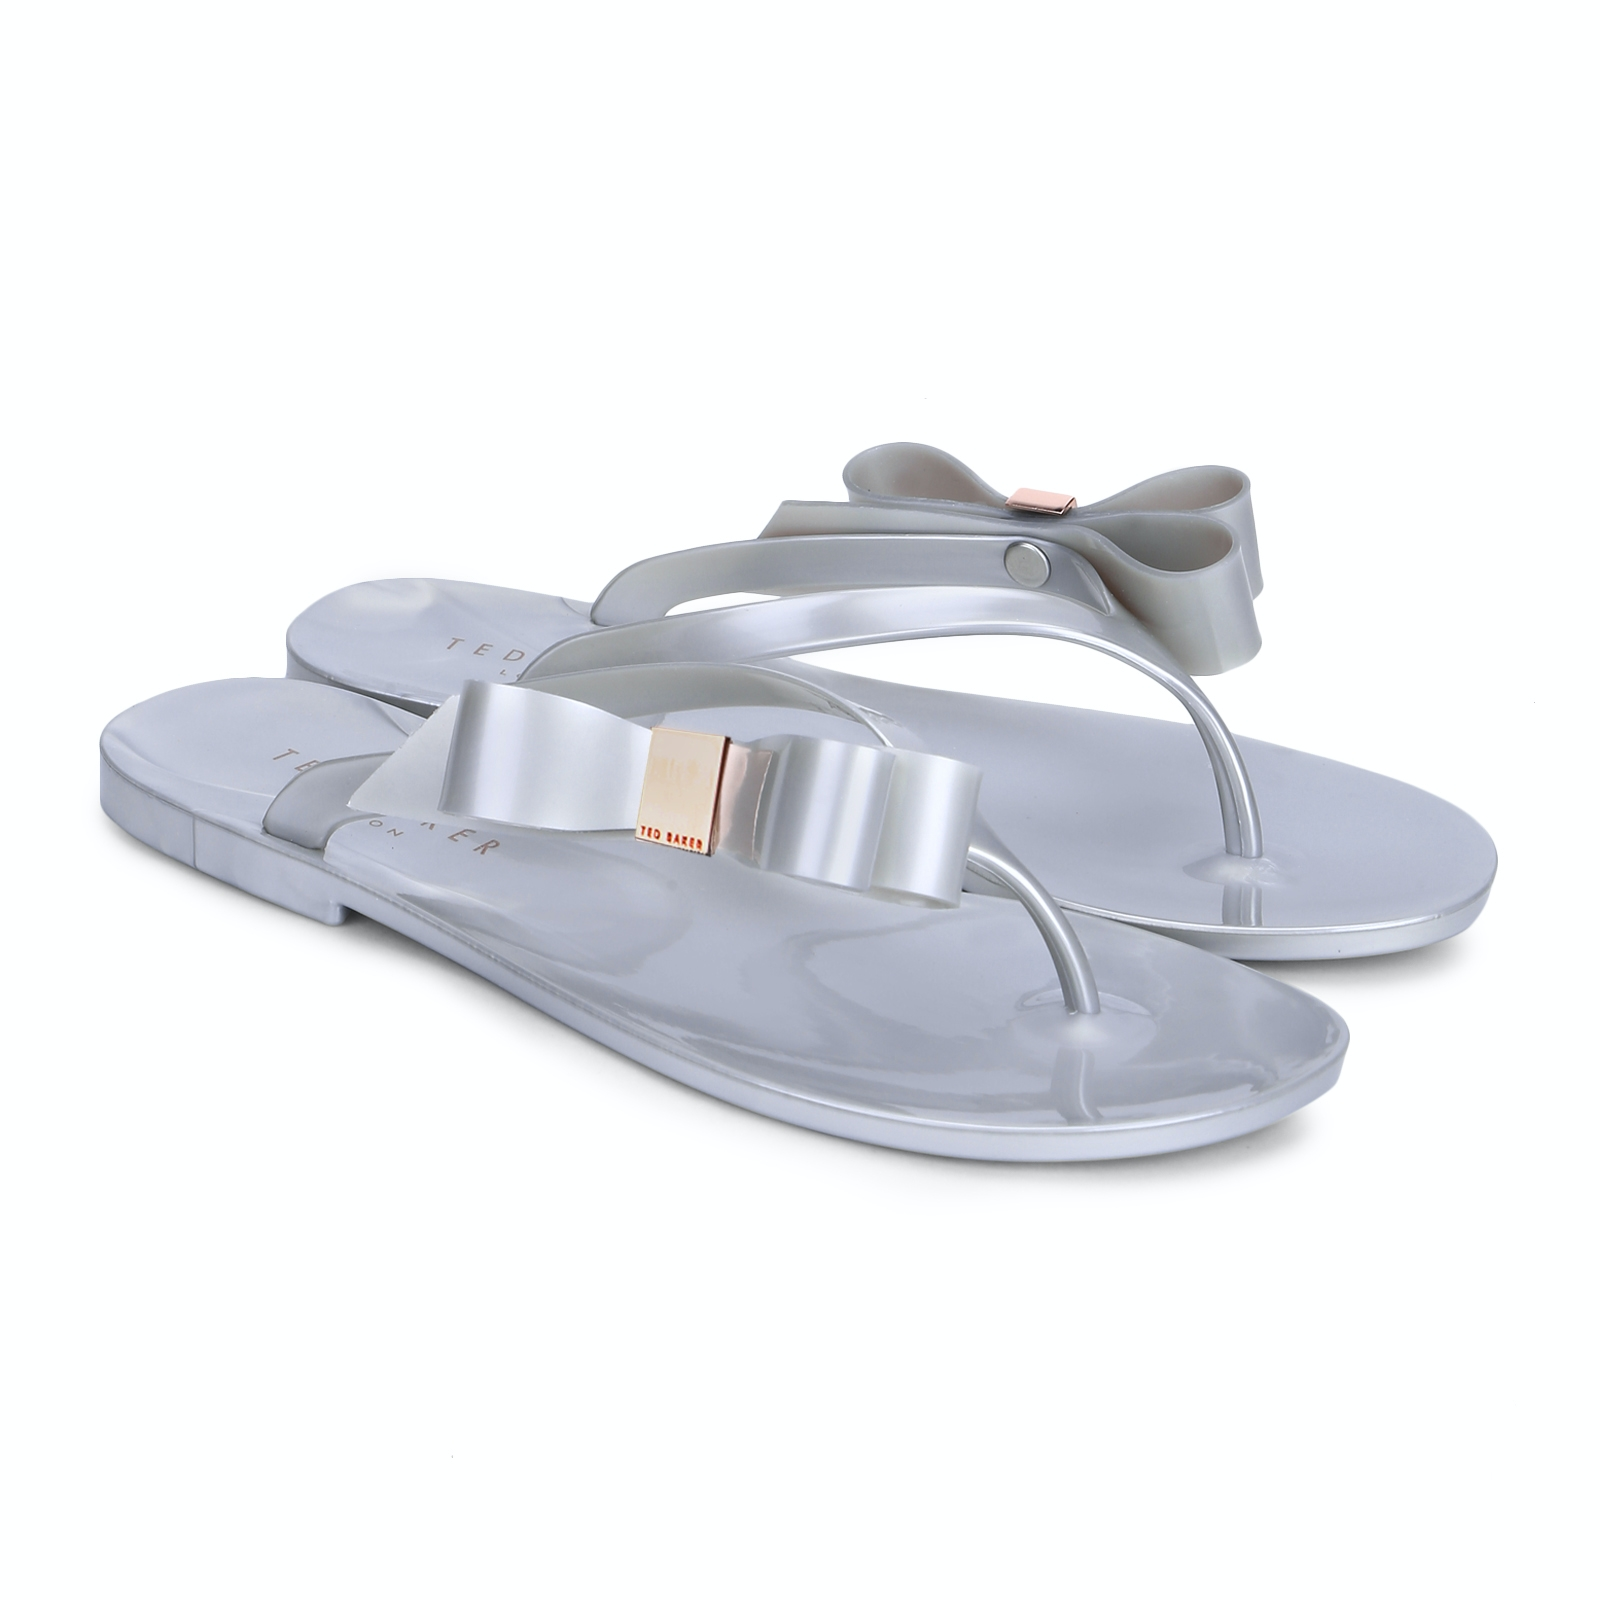 Ted Baker Shoes, silver bow flip-flops